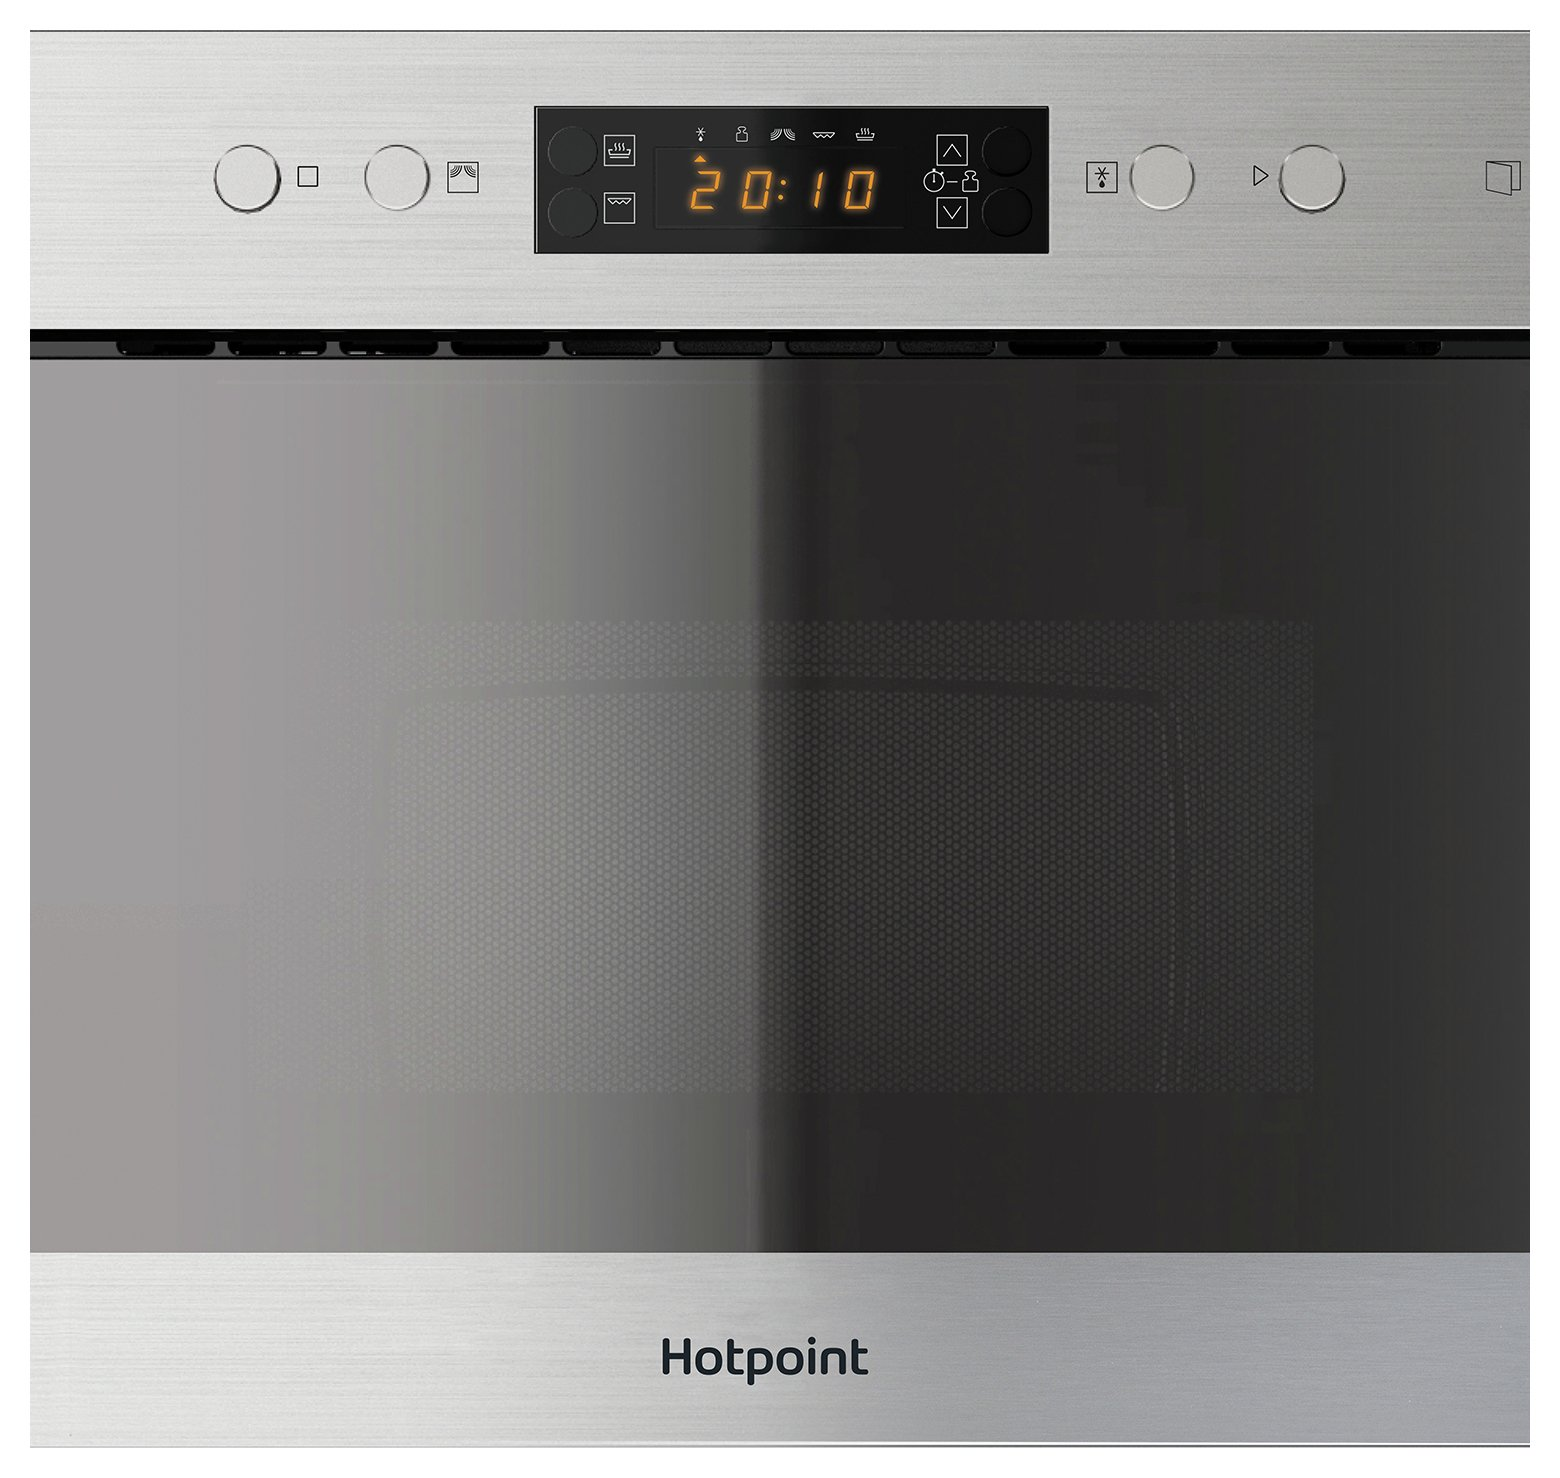 Hotpoint MN314IXH Built-in Microwave - Stainless Steel.